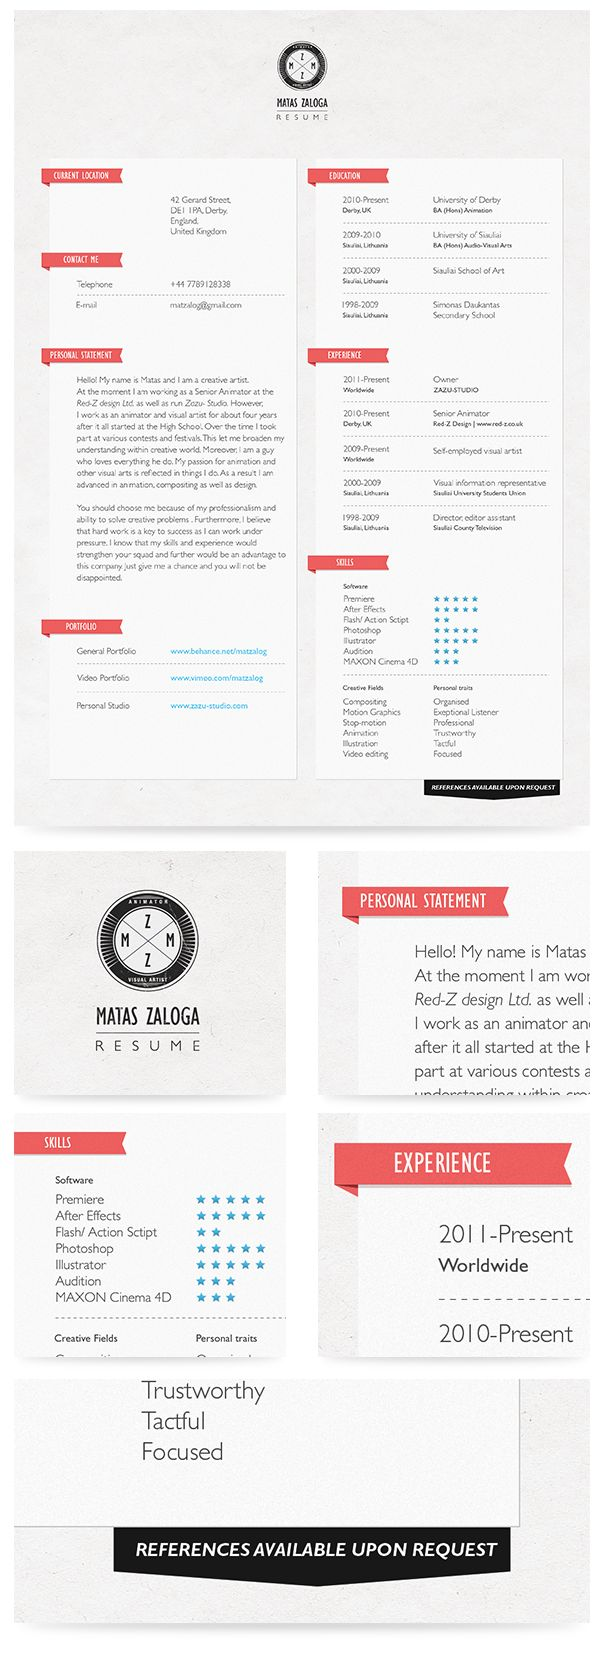 63 best CVs images on Pinterest | Graph design, Infographic and Page ...